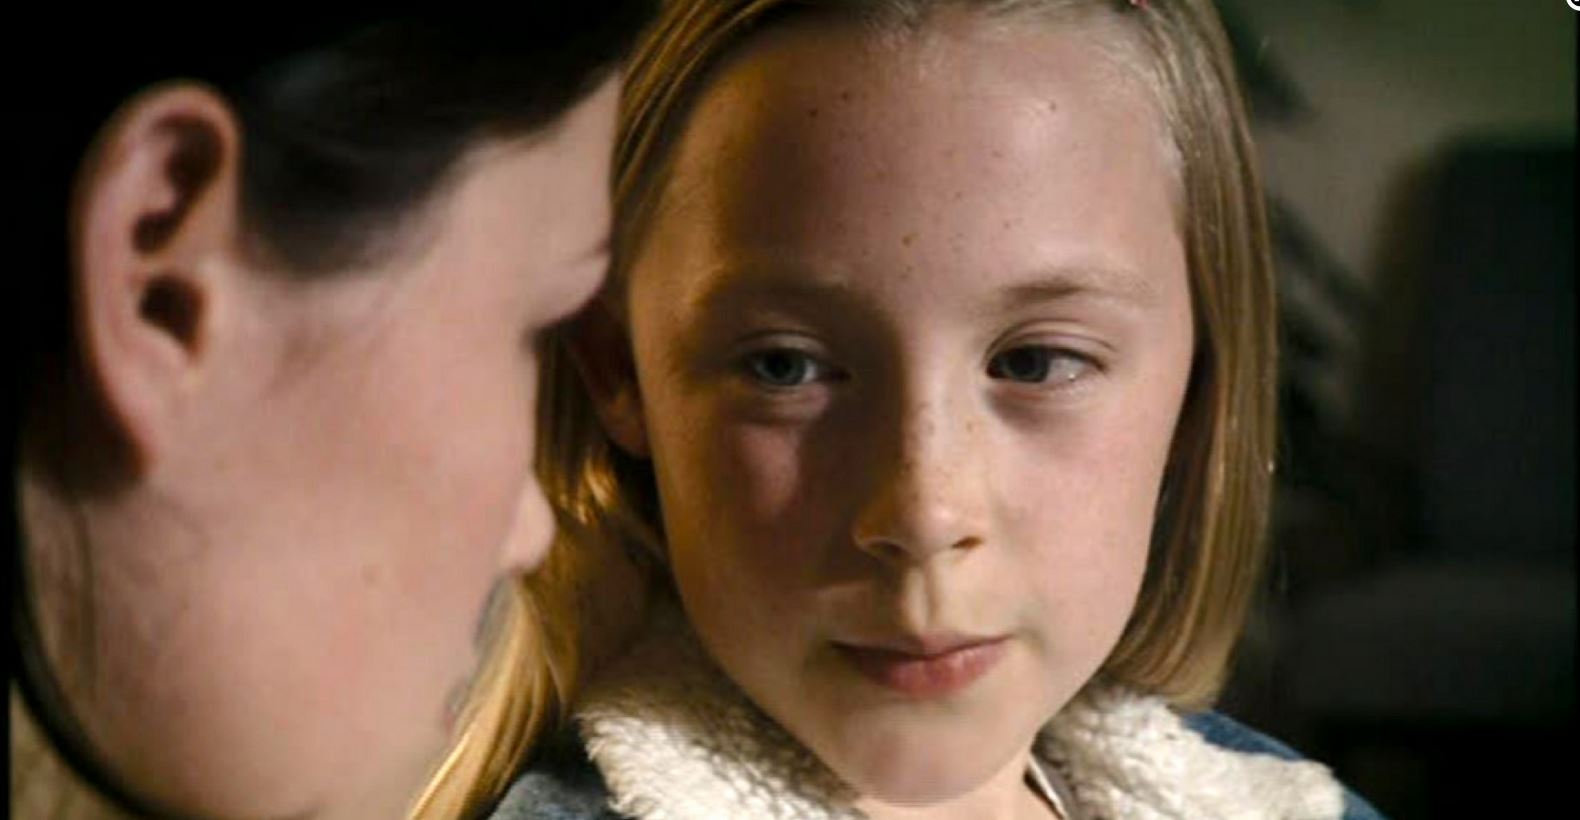 Saoirse Ronan - The Clinic (2003)